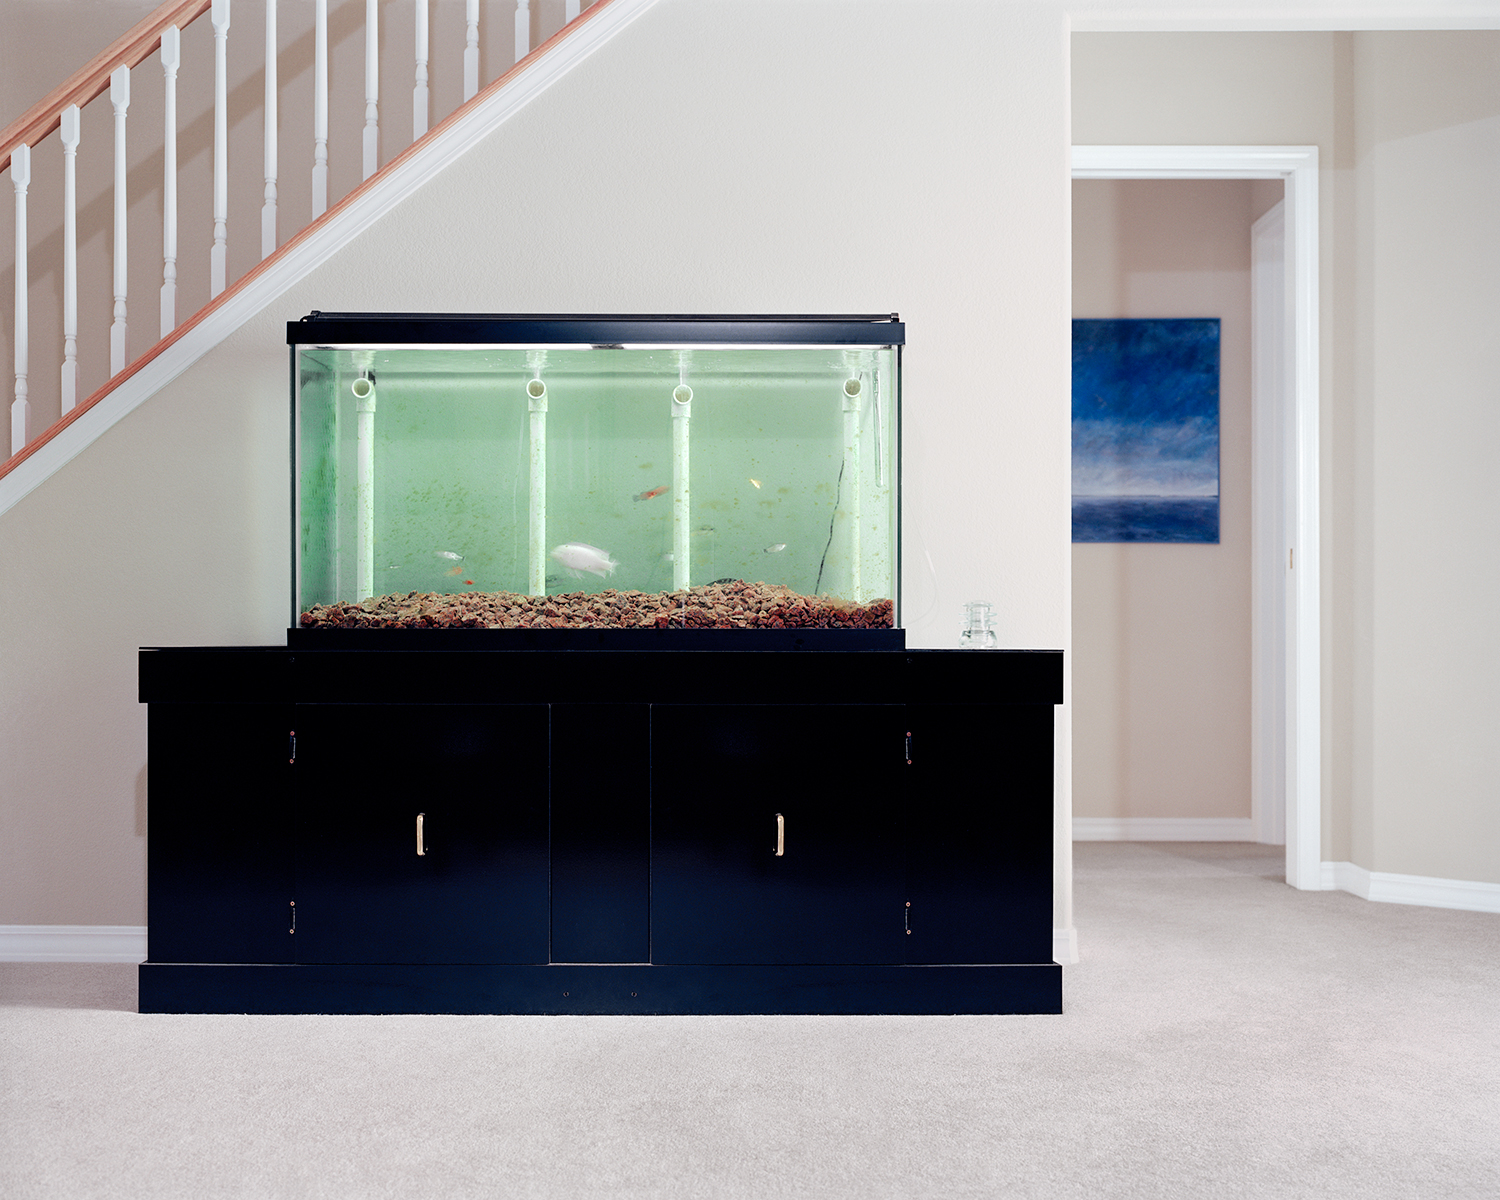 Untitled (Fishtank)